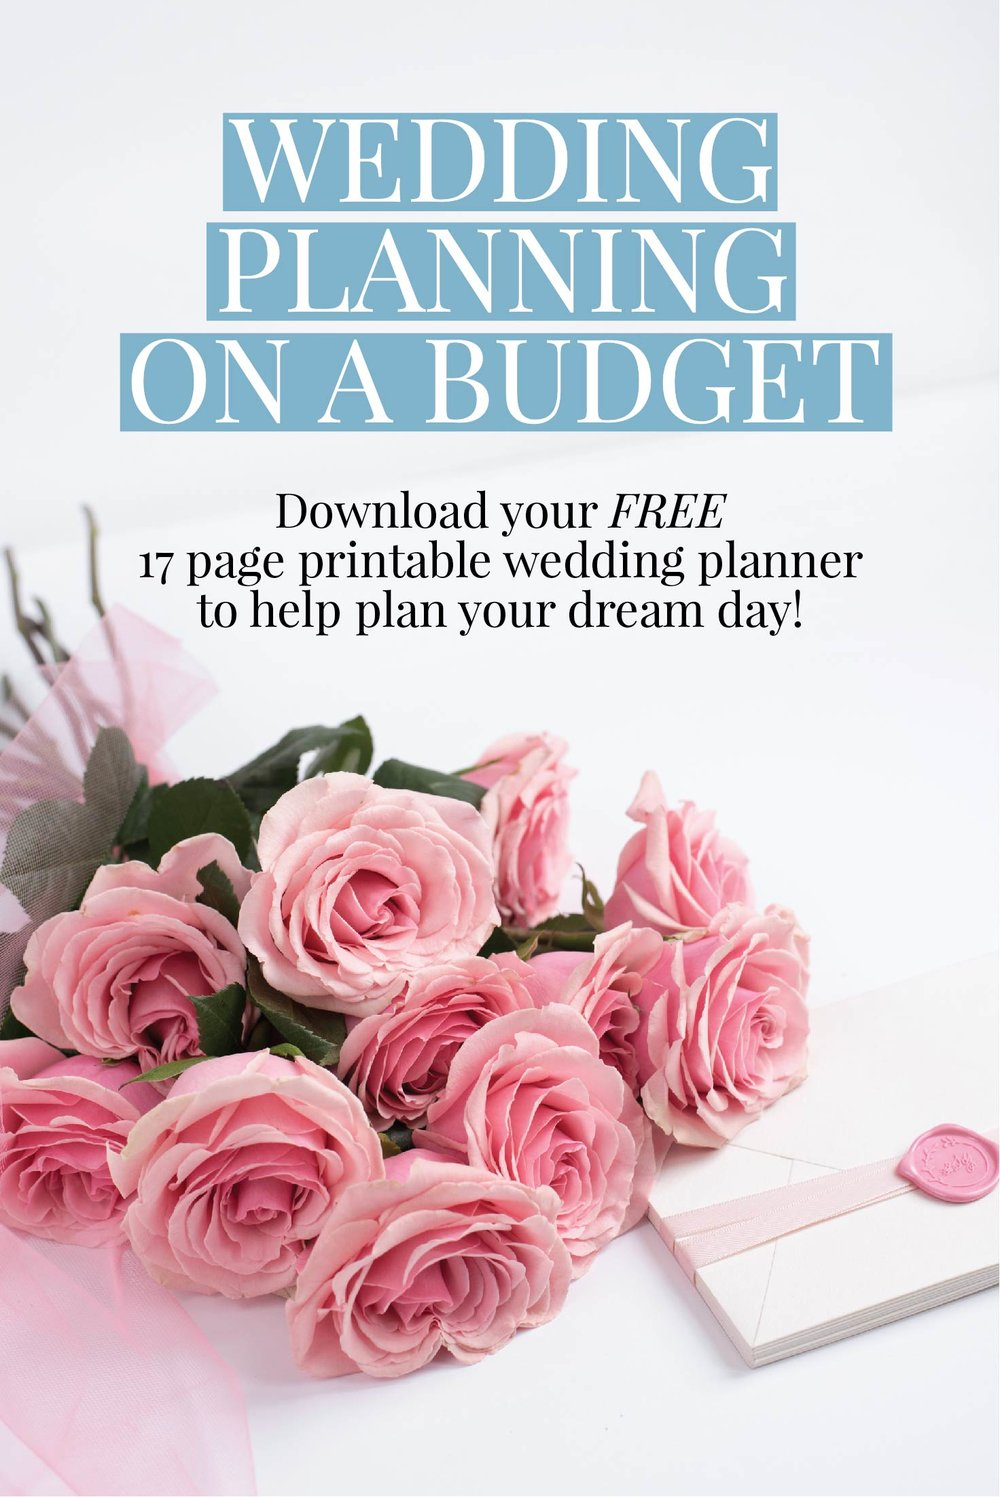 WEDDING-PLANNING-ON-A-BUDGET.jpg